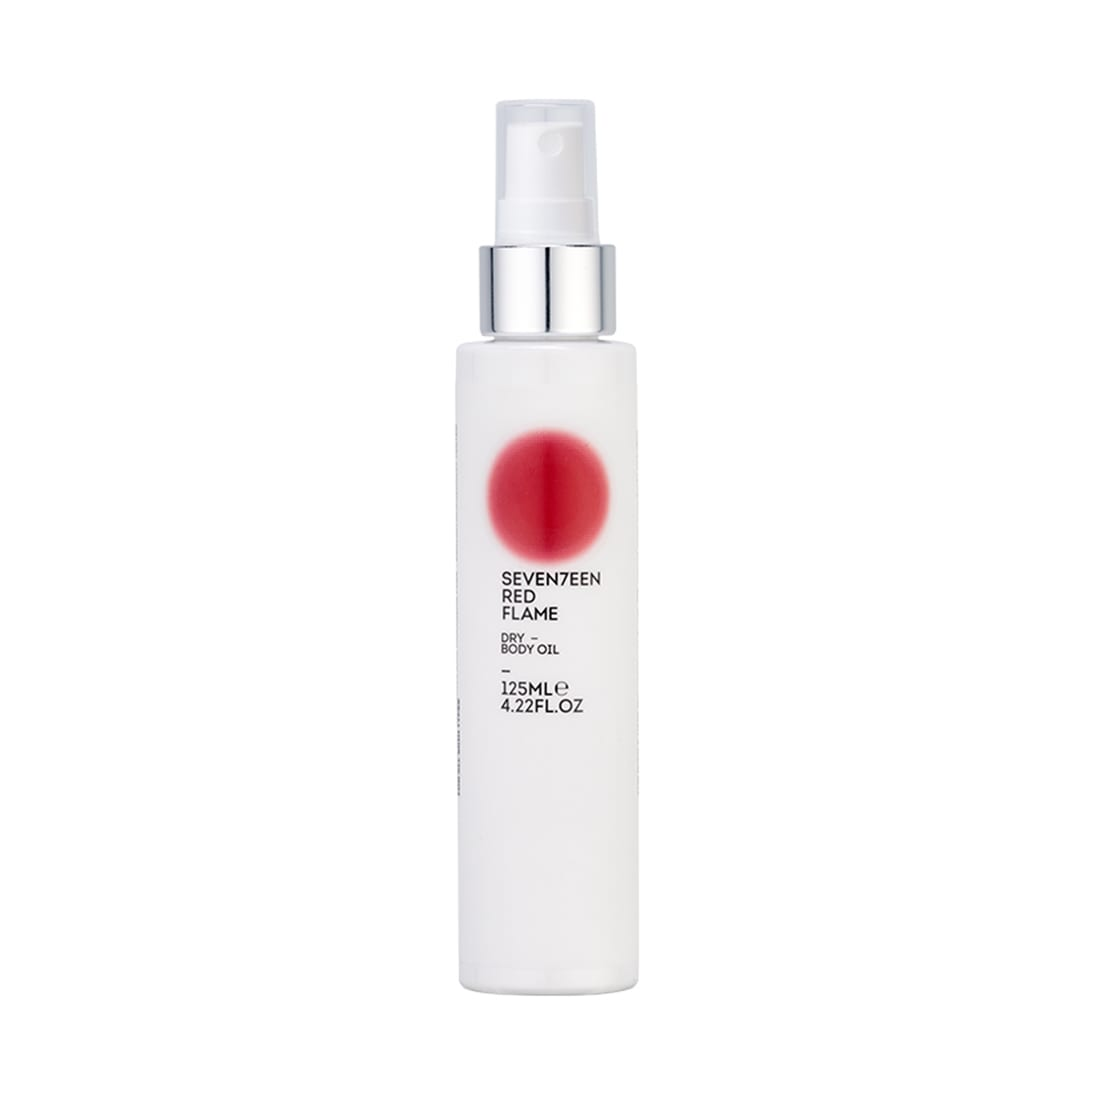 Red Flame Dry Body Oil 125ml